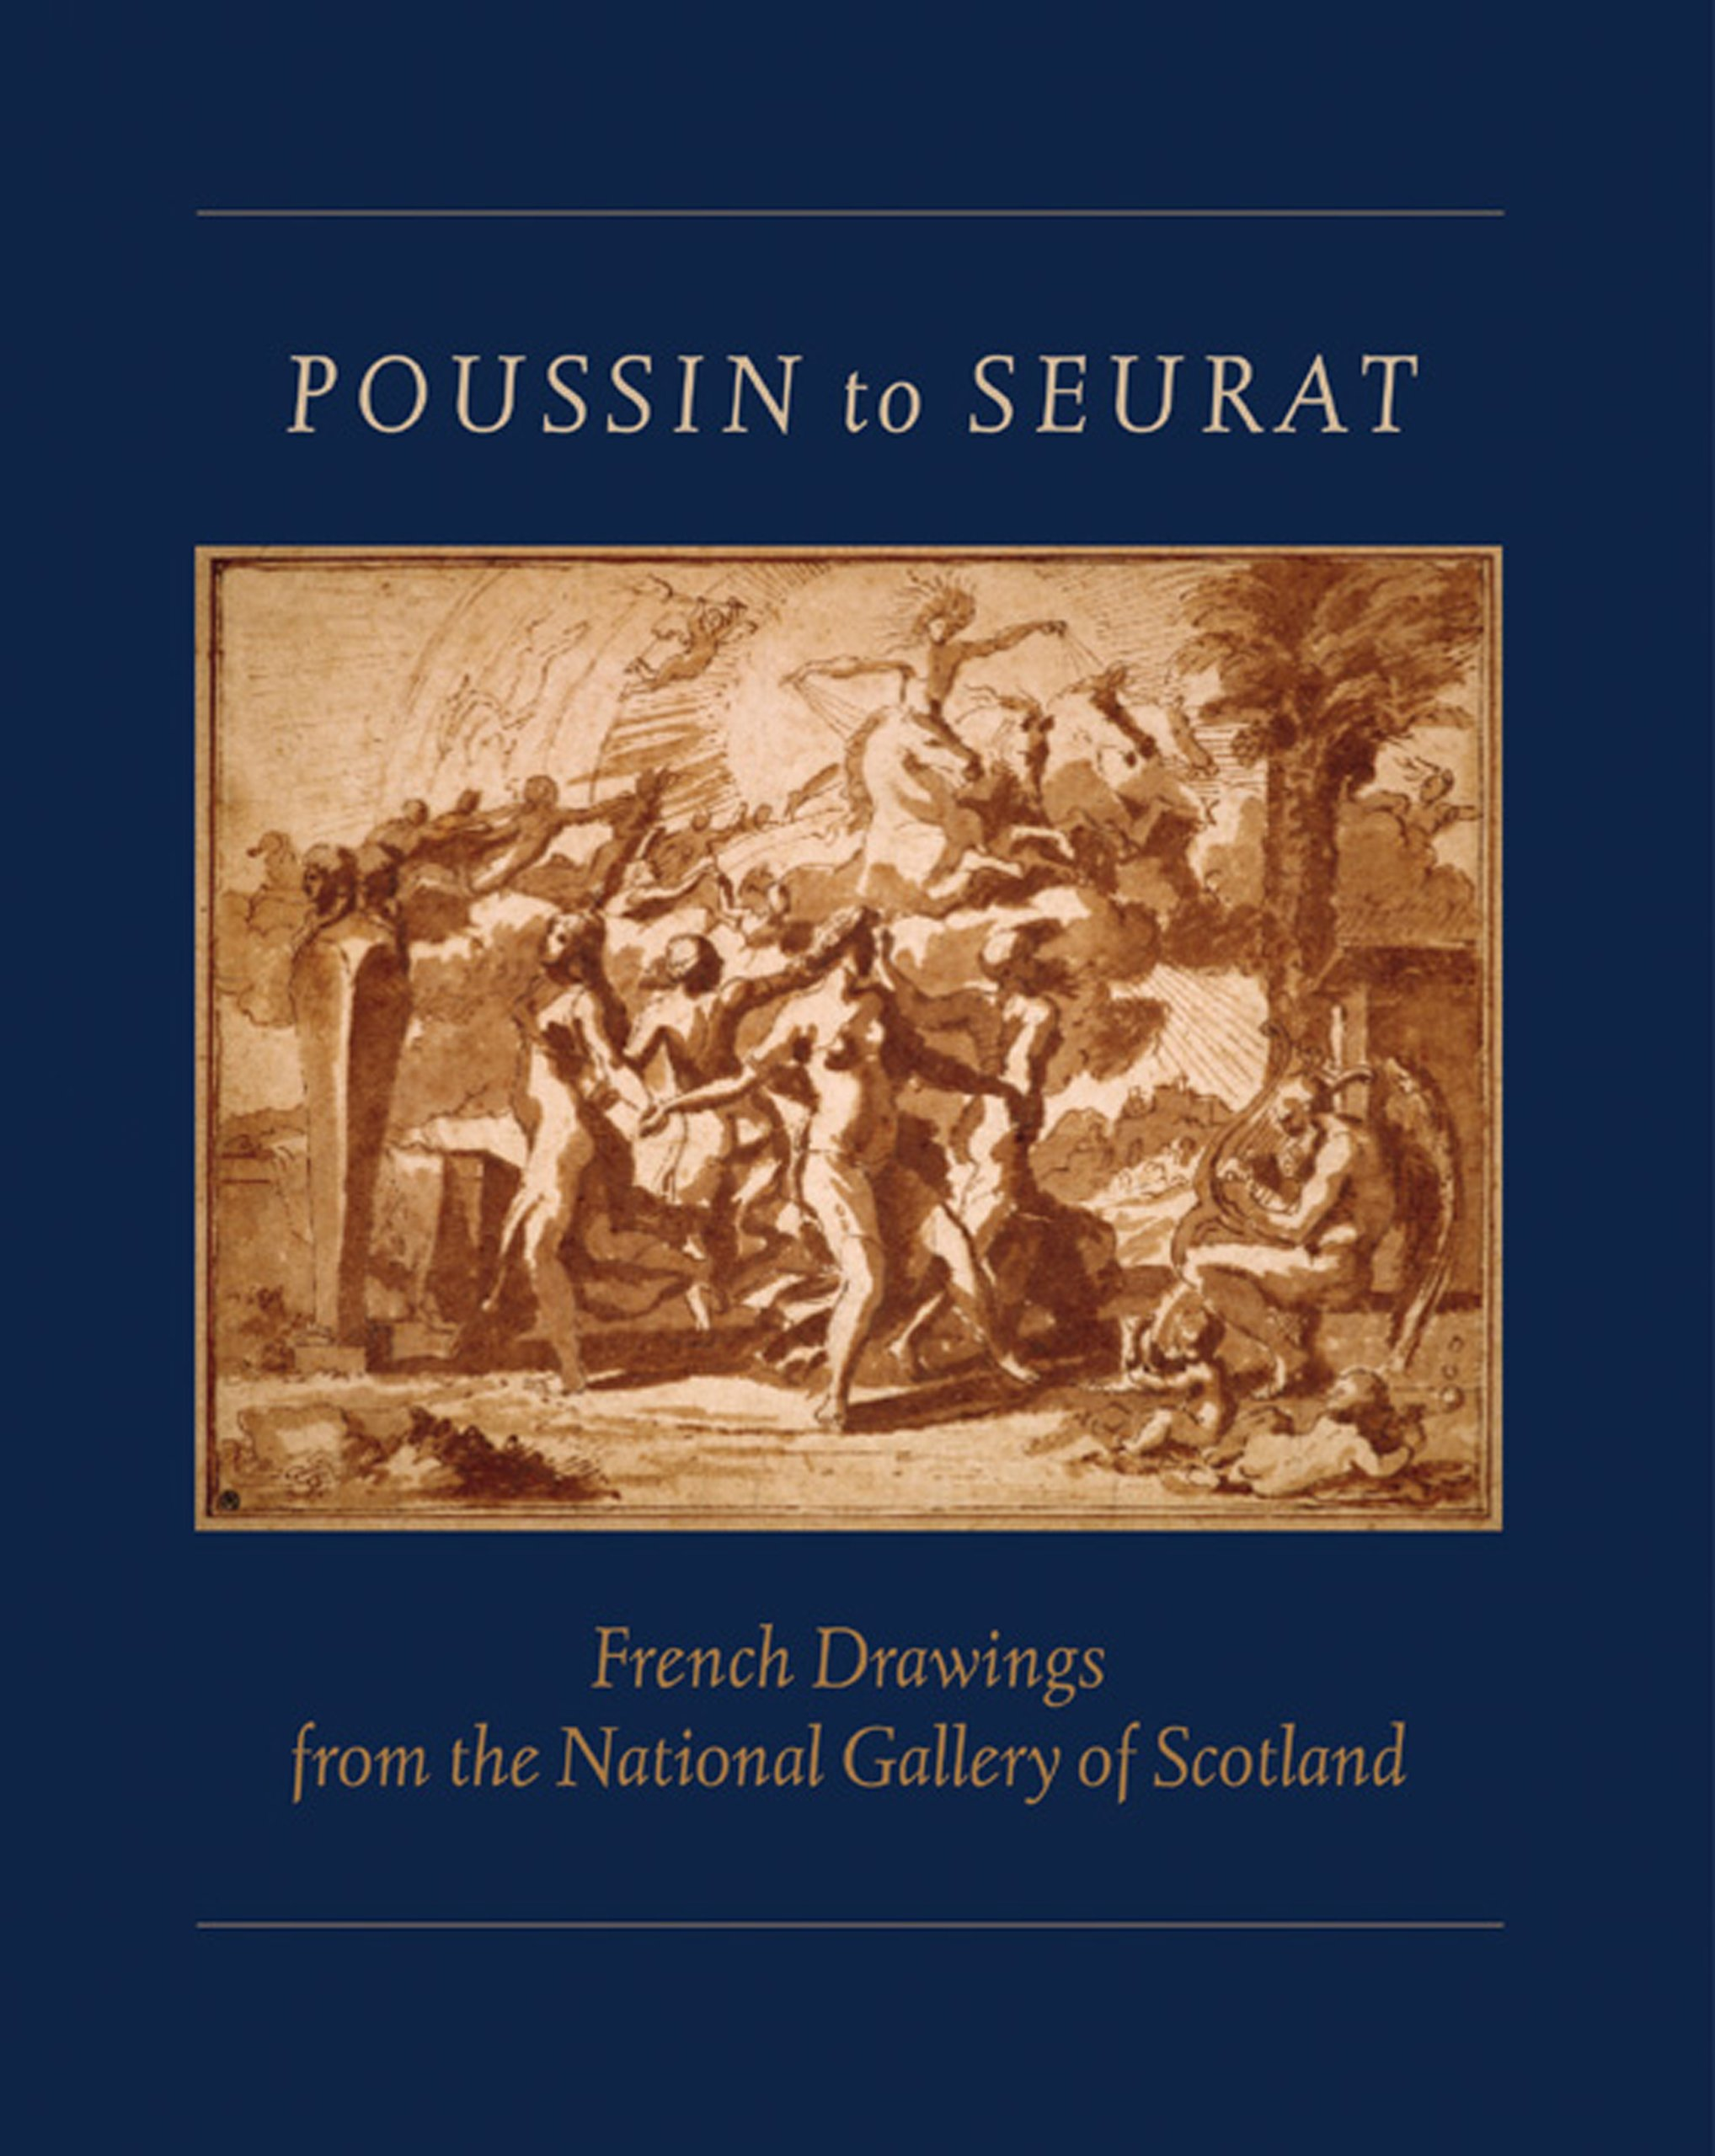 Poussin to Seurat French Drawings from the National Gallery of Scotland